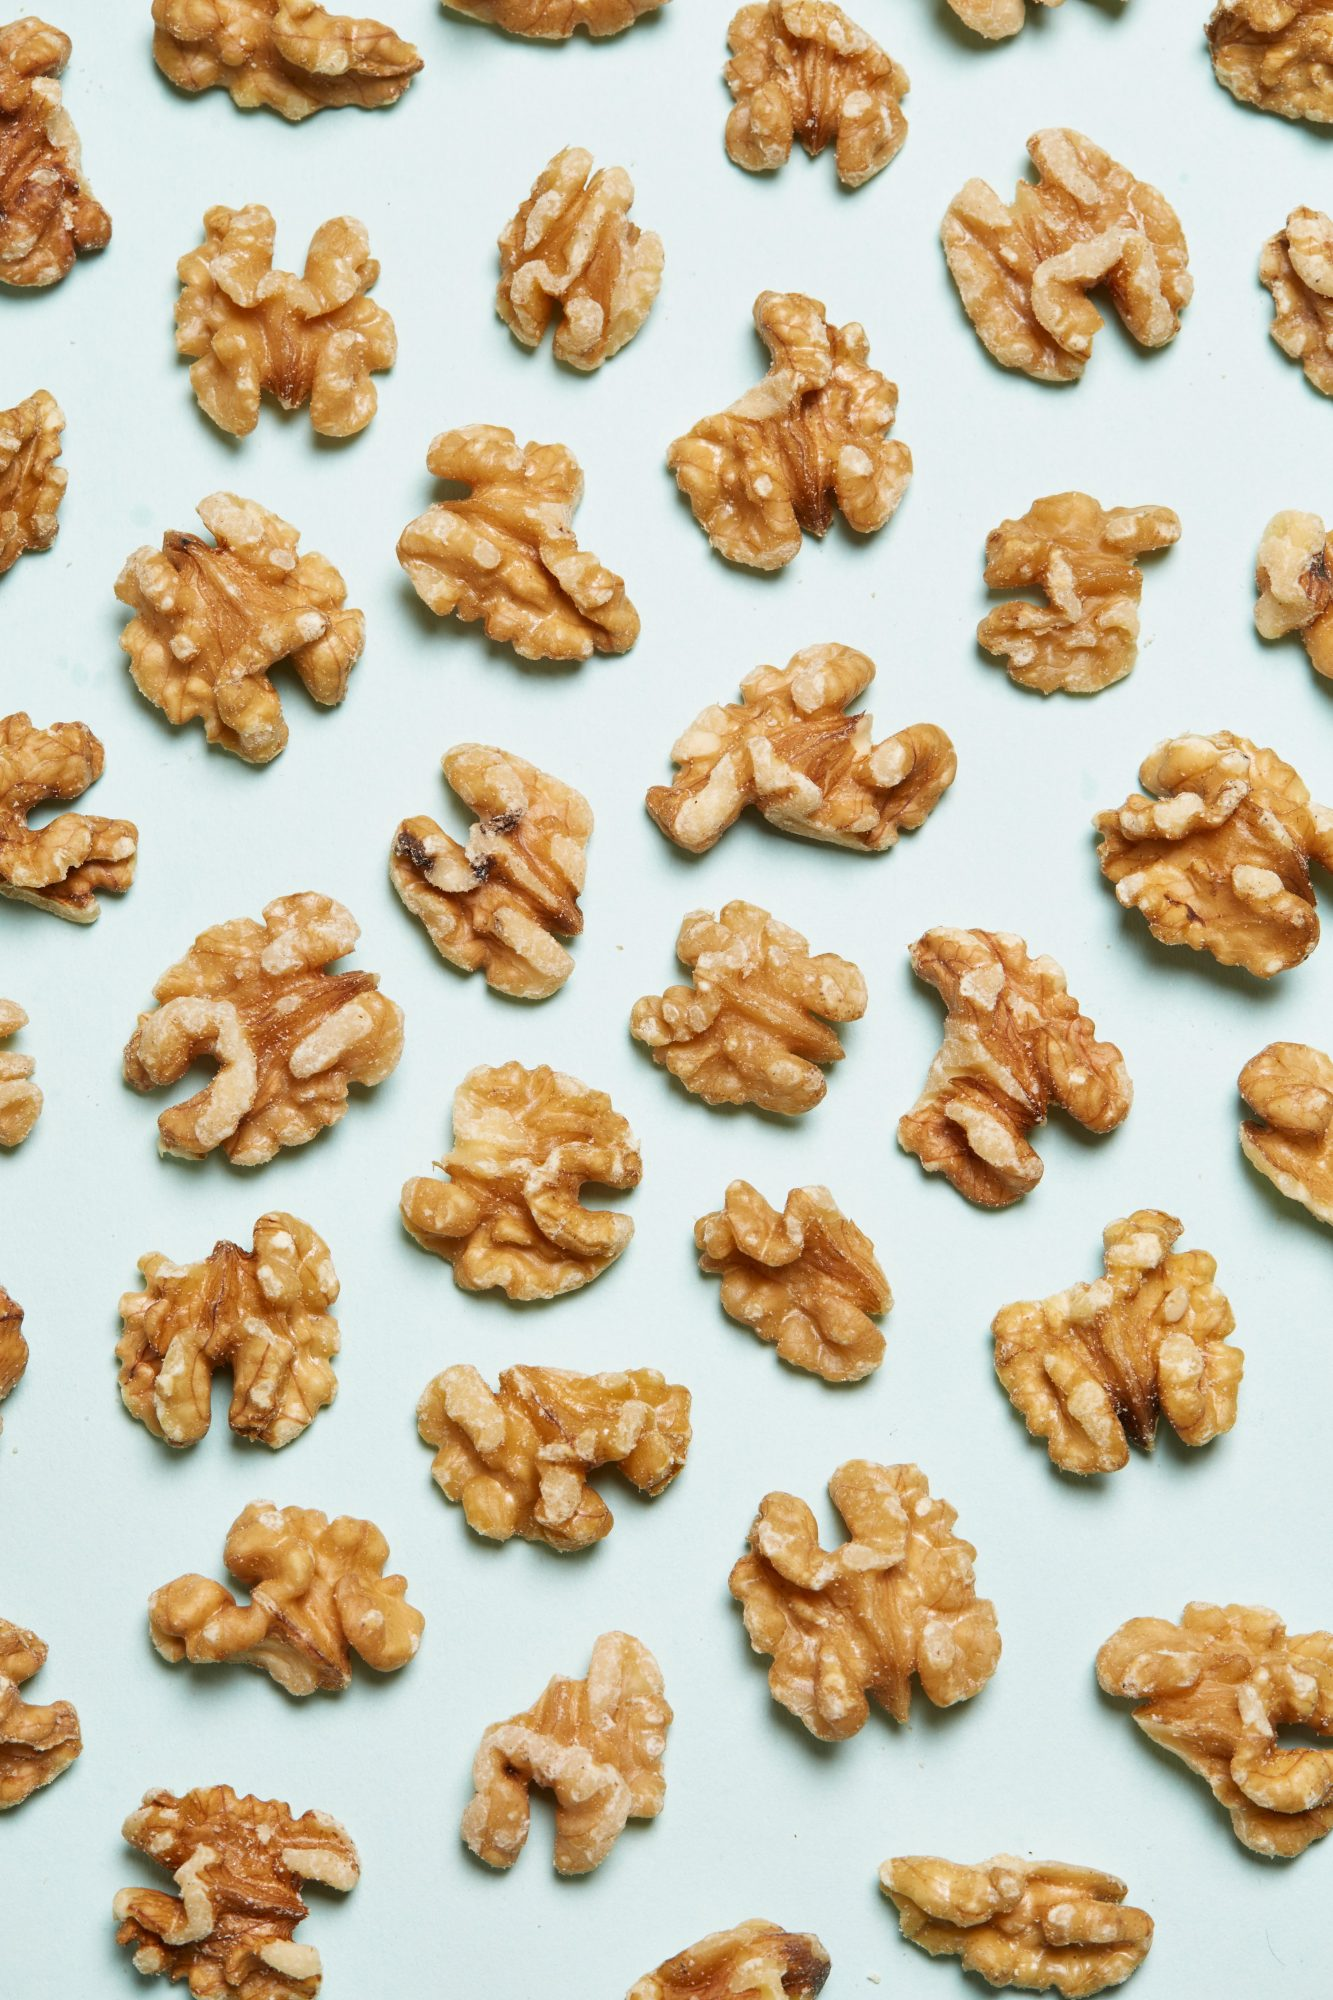 There's Finally Good News for People With Nut Allergies